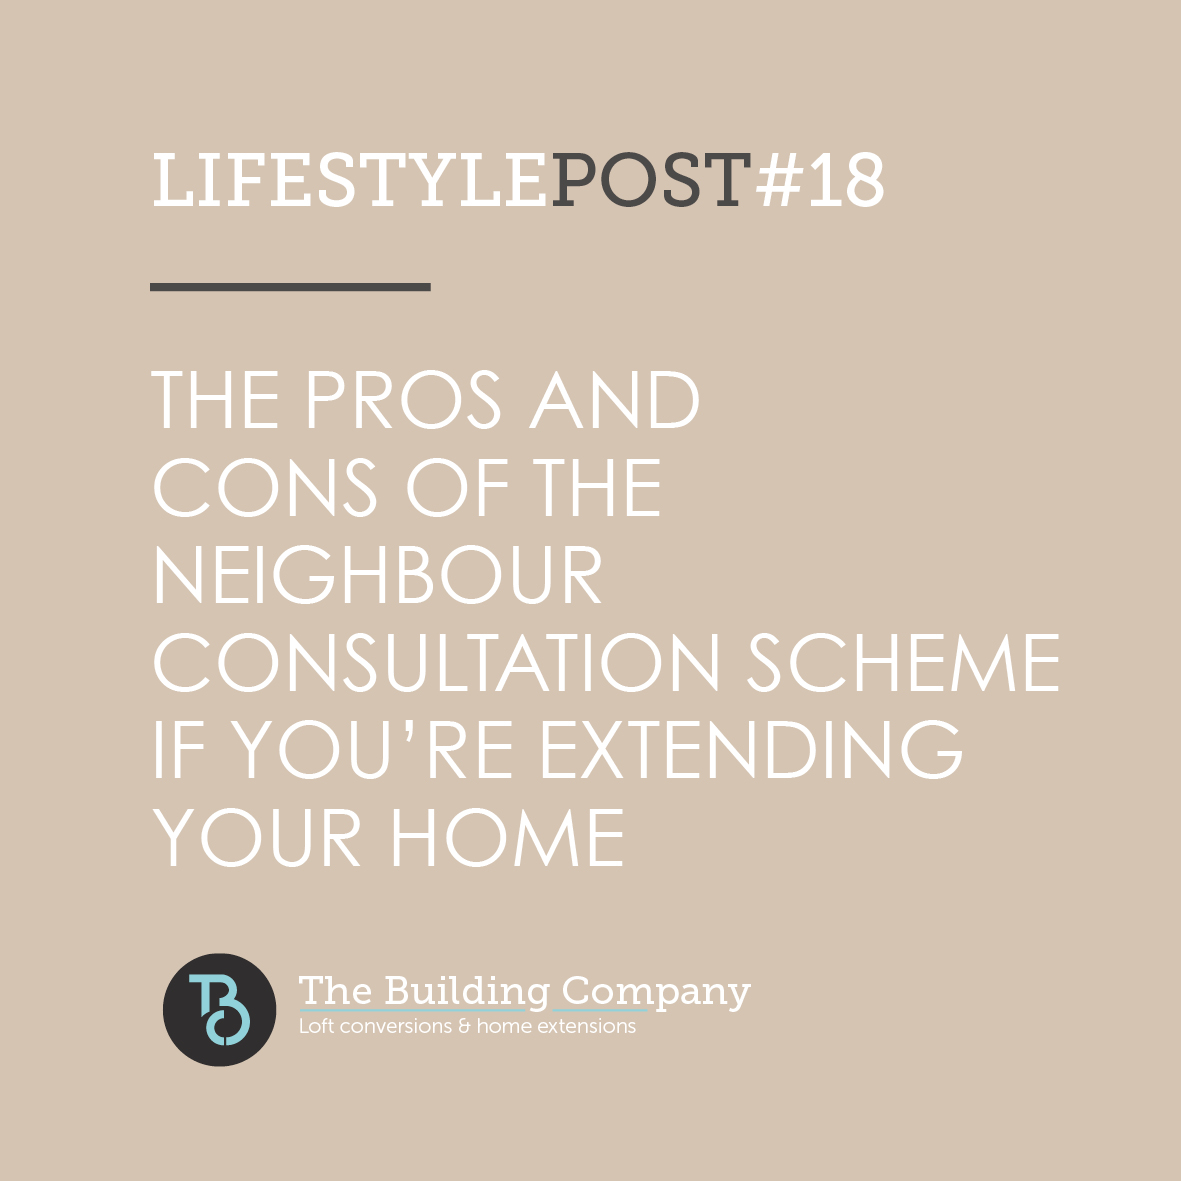 The pros and cons of the Neighbour Consultation Scheme if you're extending your home